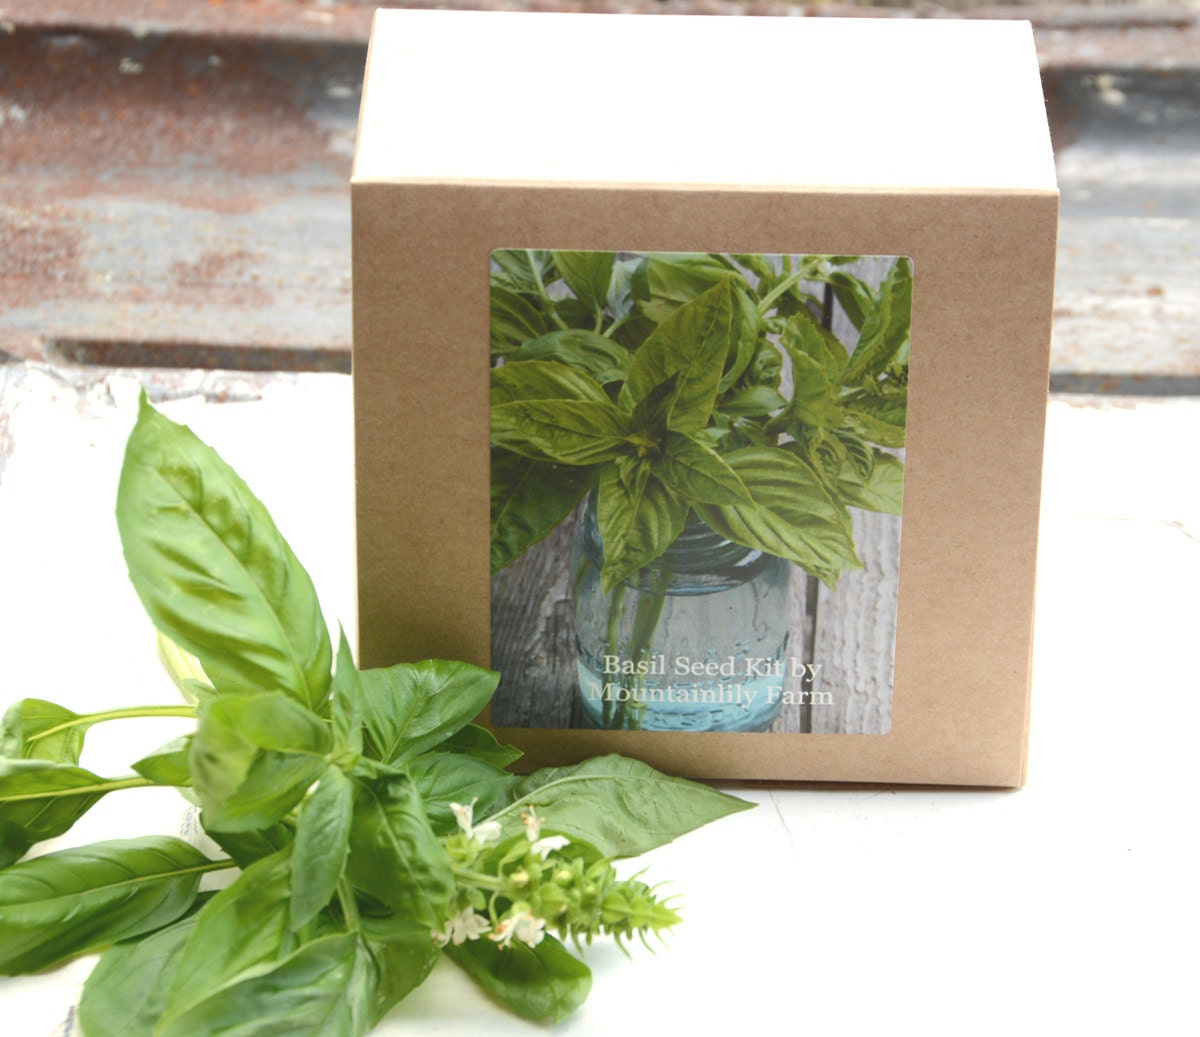 Organic Indoor Herb Garden Kit Sweet basil seed kit diy kit garden kit basil seeds with zoom workwithnaturefo